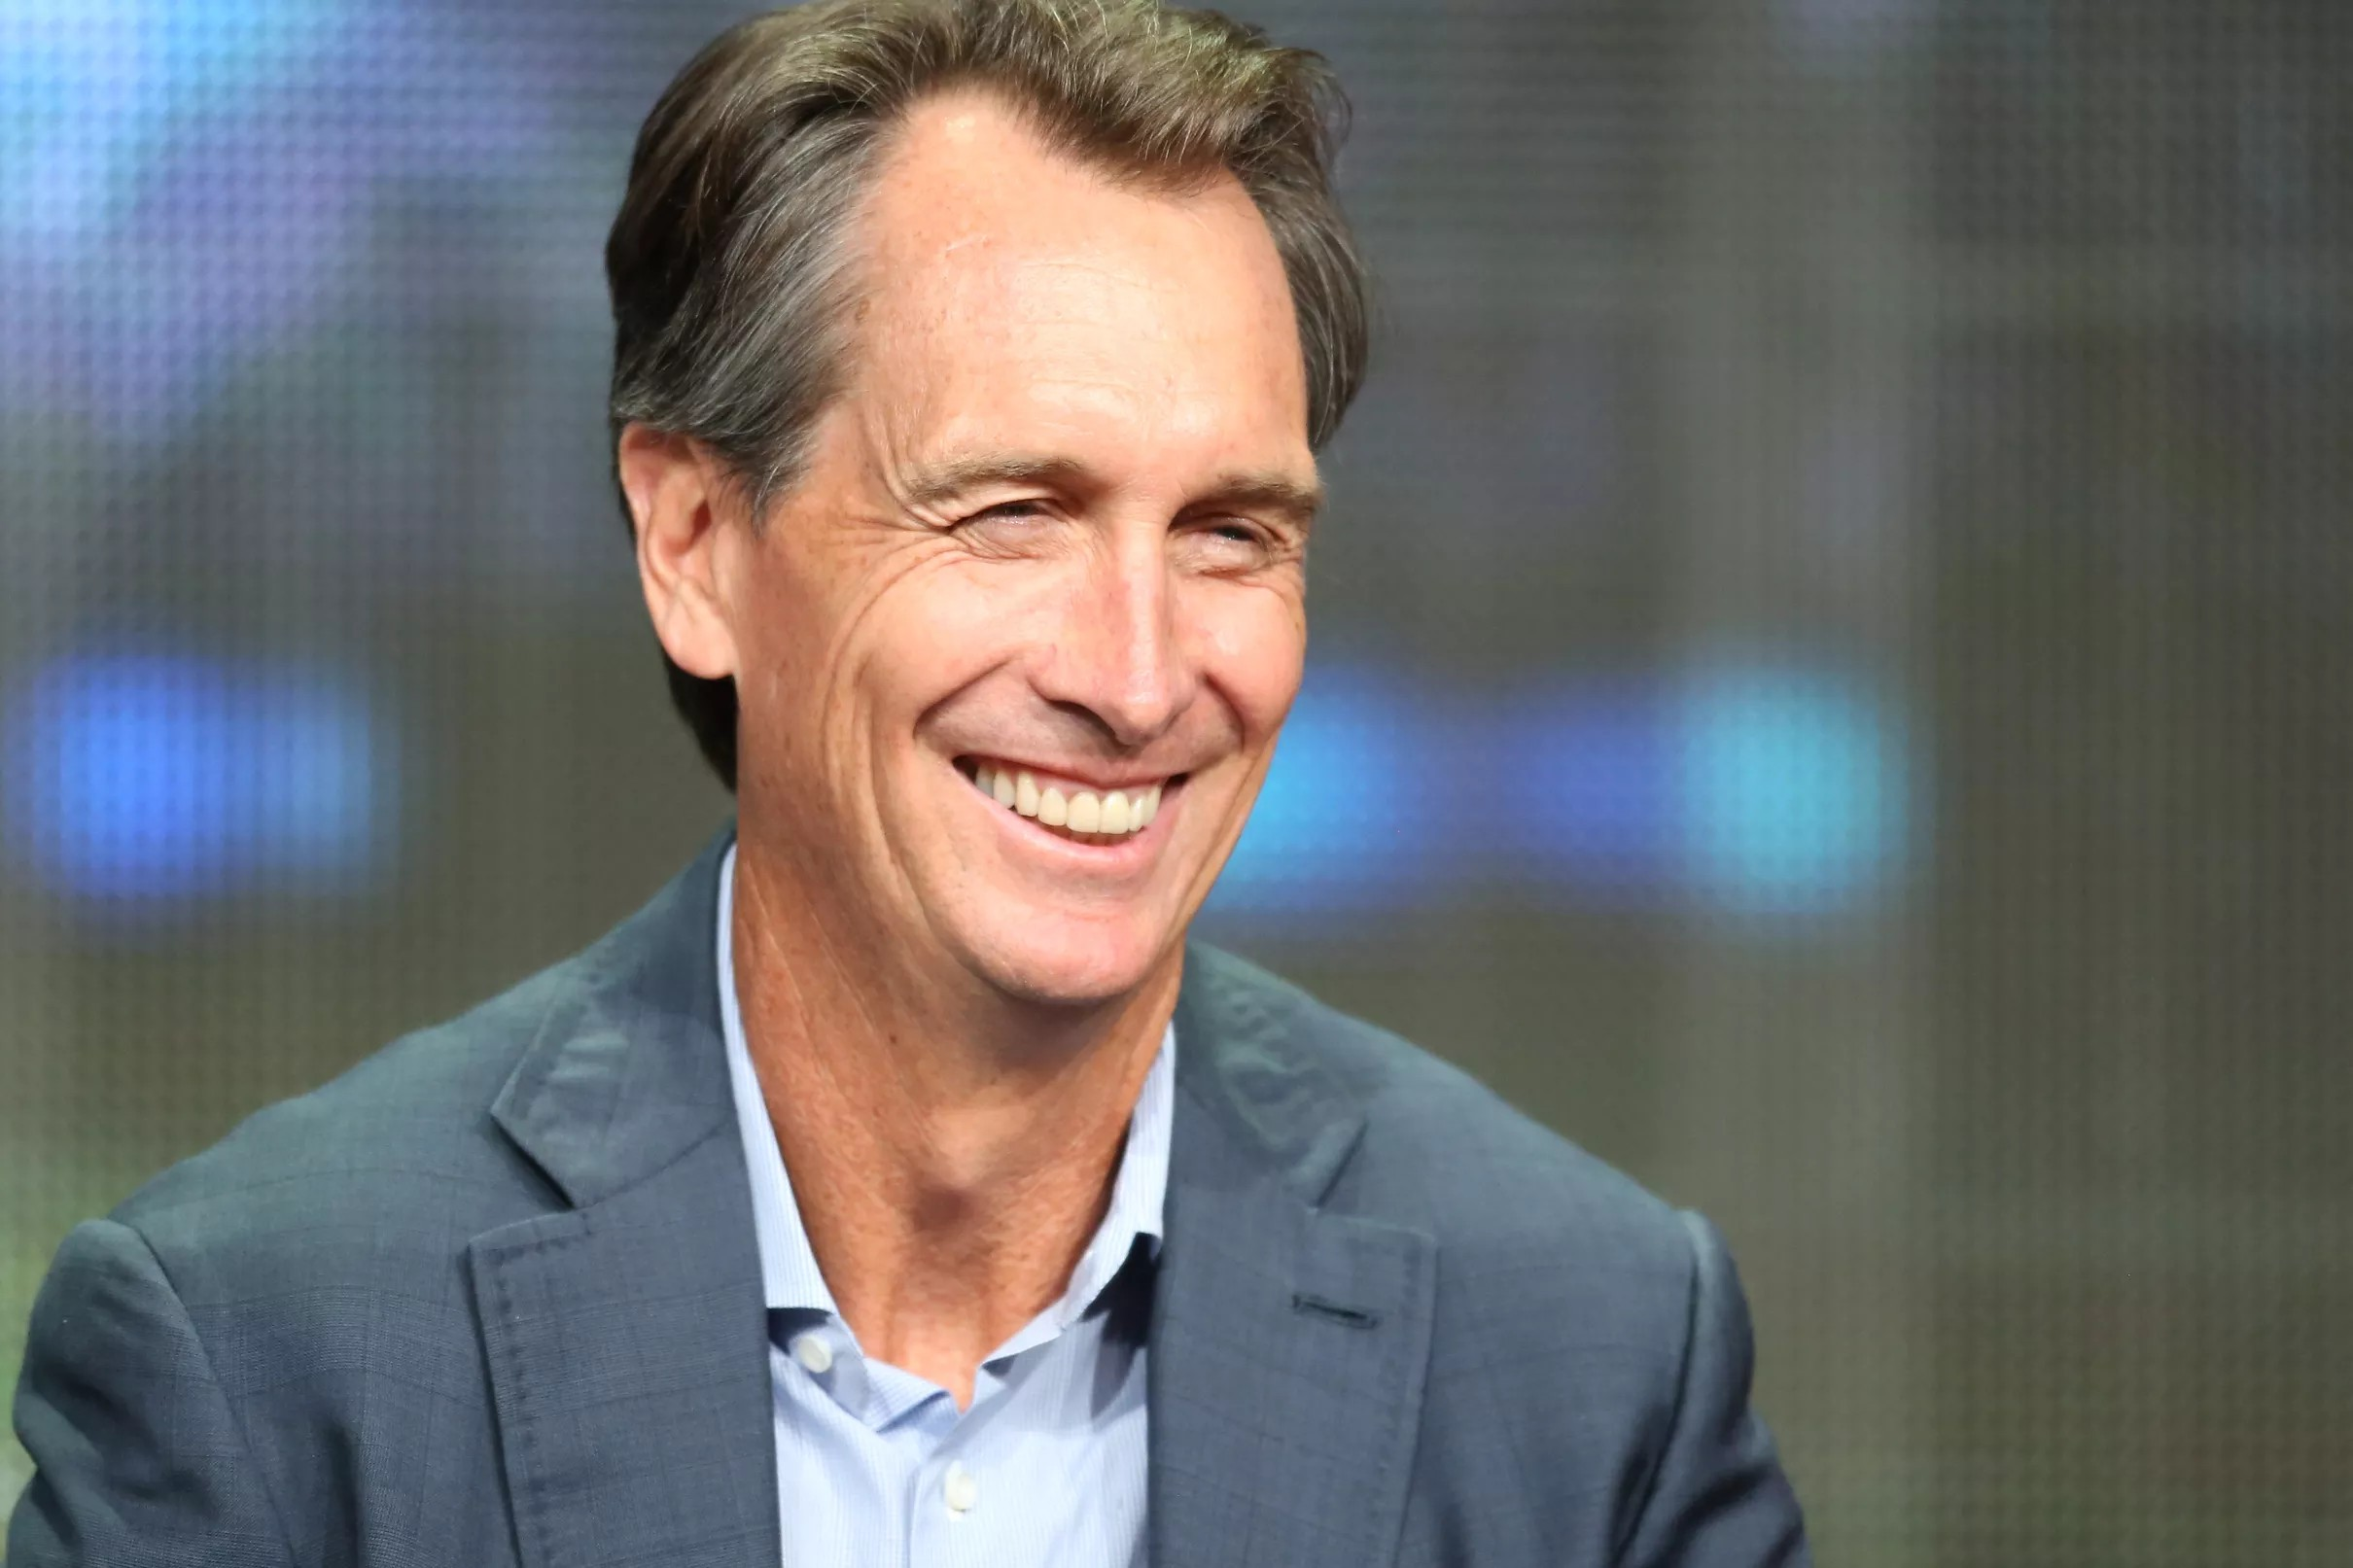 Cris Collinsworth | Nfl football players, Bengals football ... |Cris Collinsworth